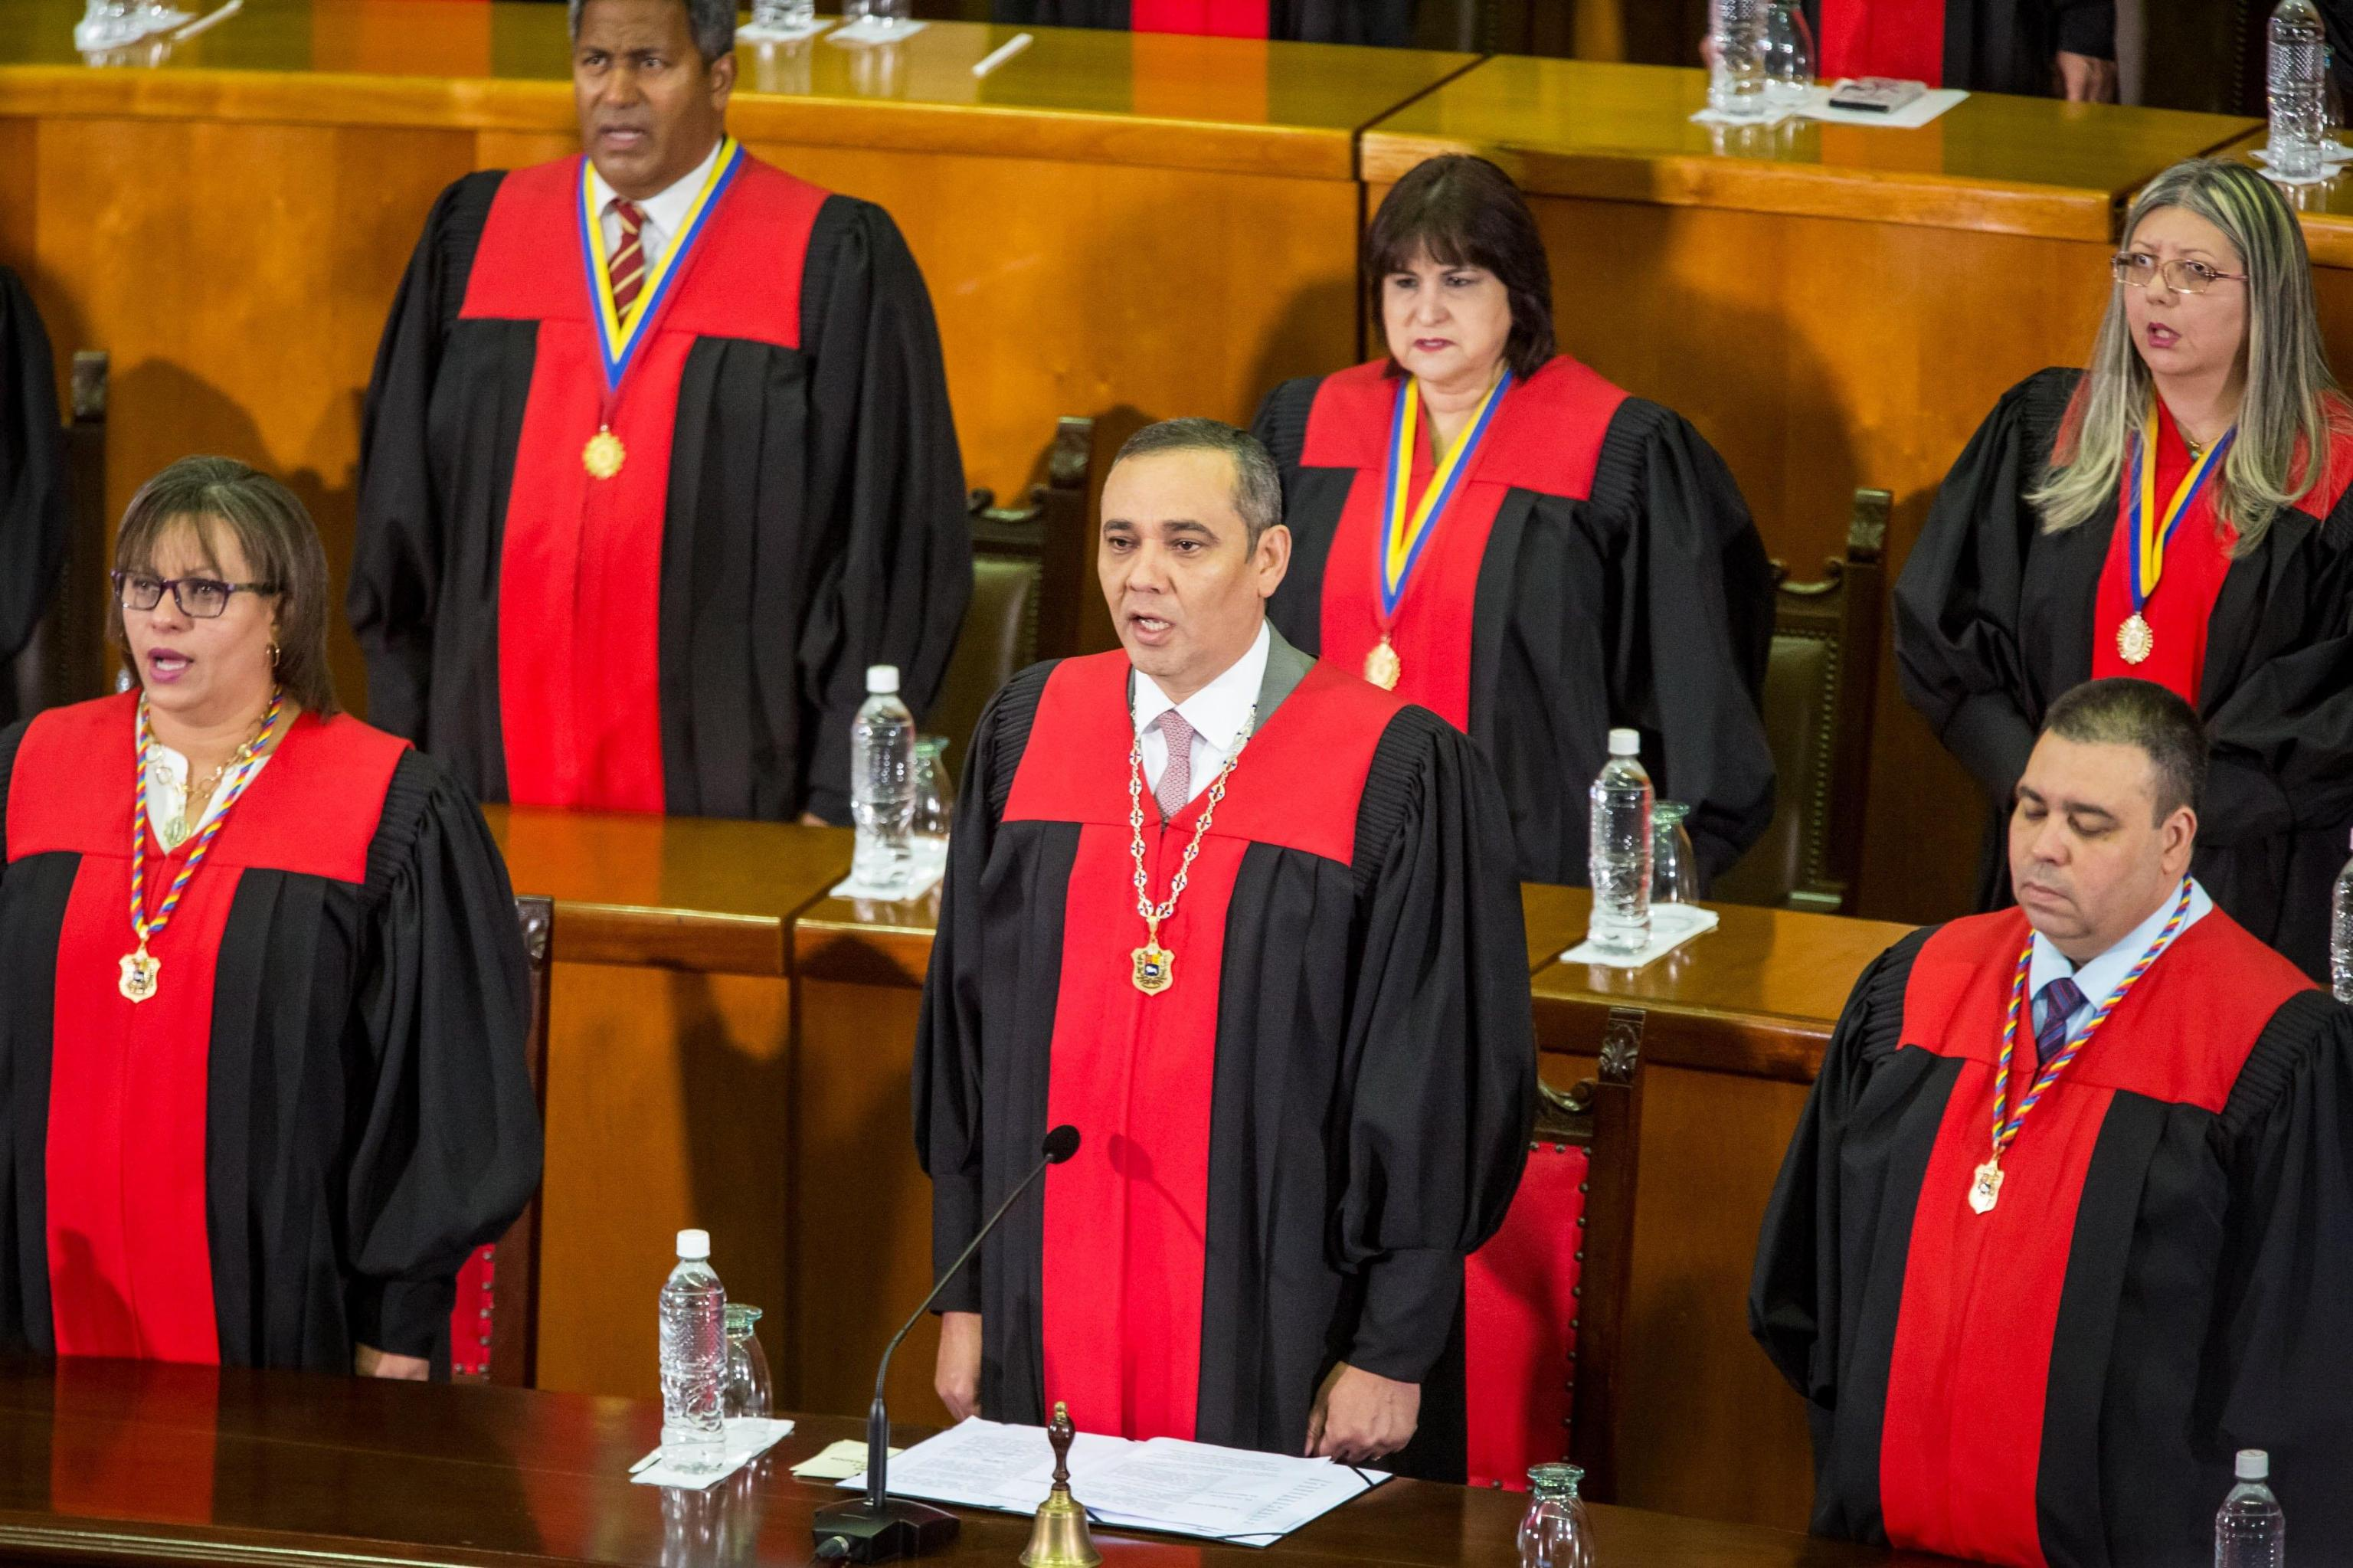 Annual address at the Supreme Court of Justice in Caracas, Venezuela